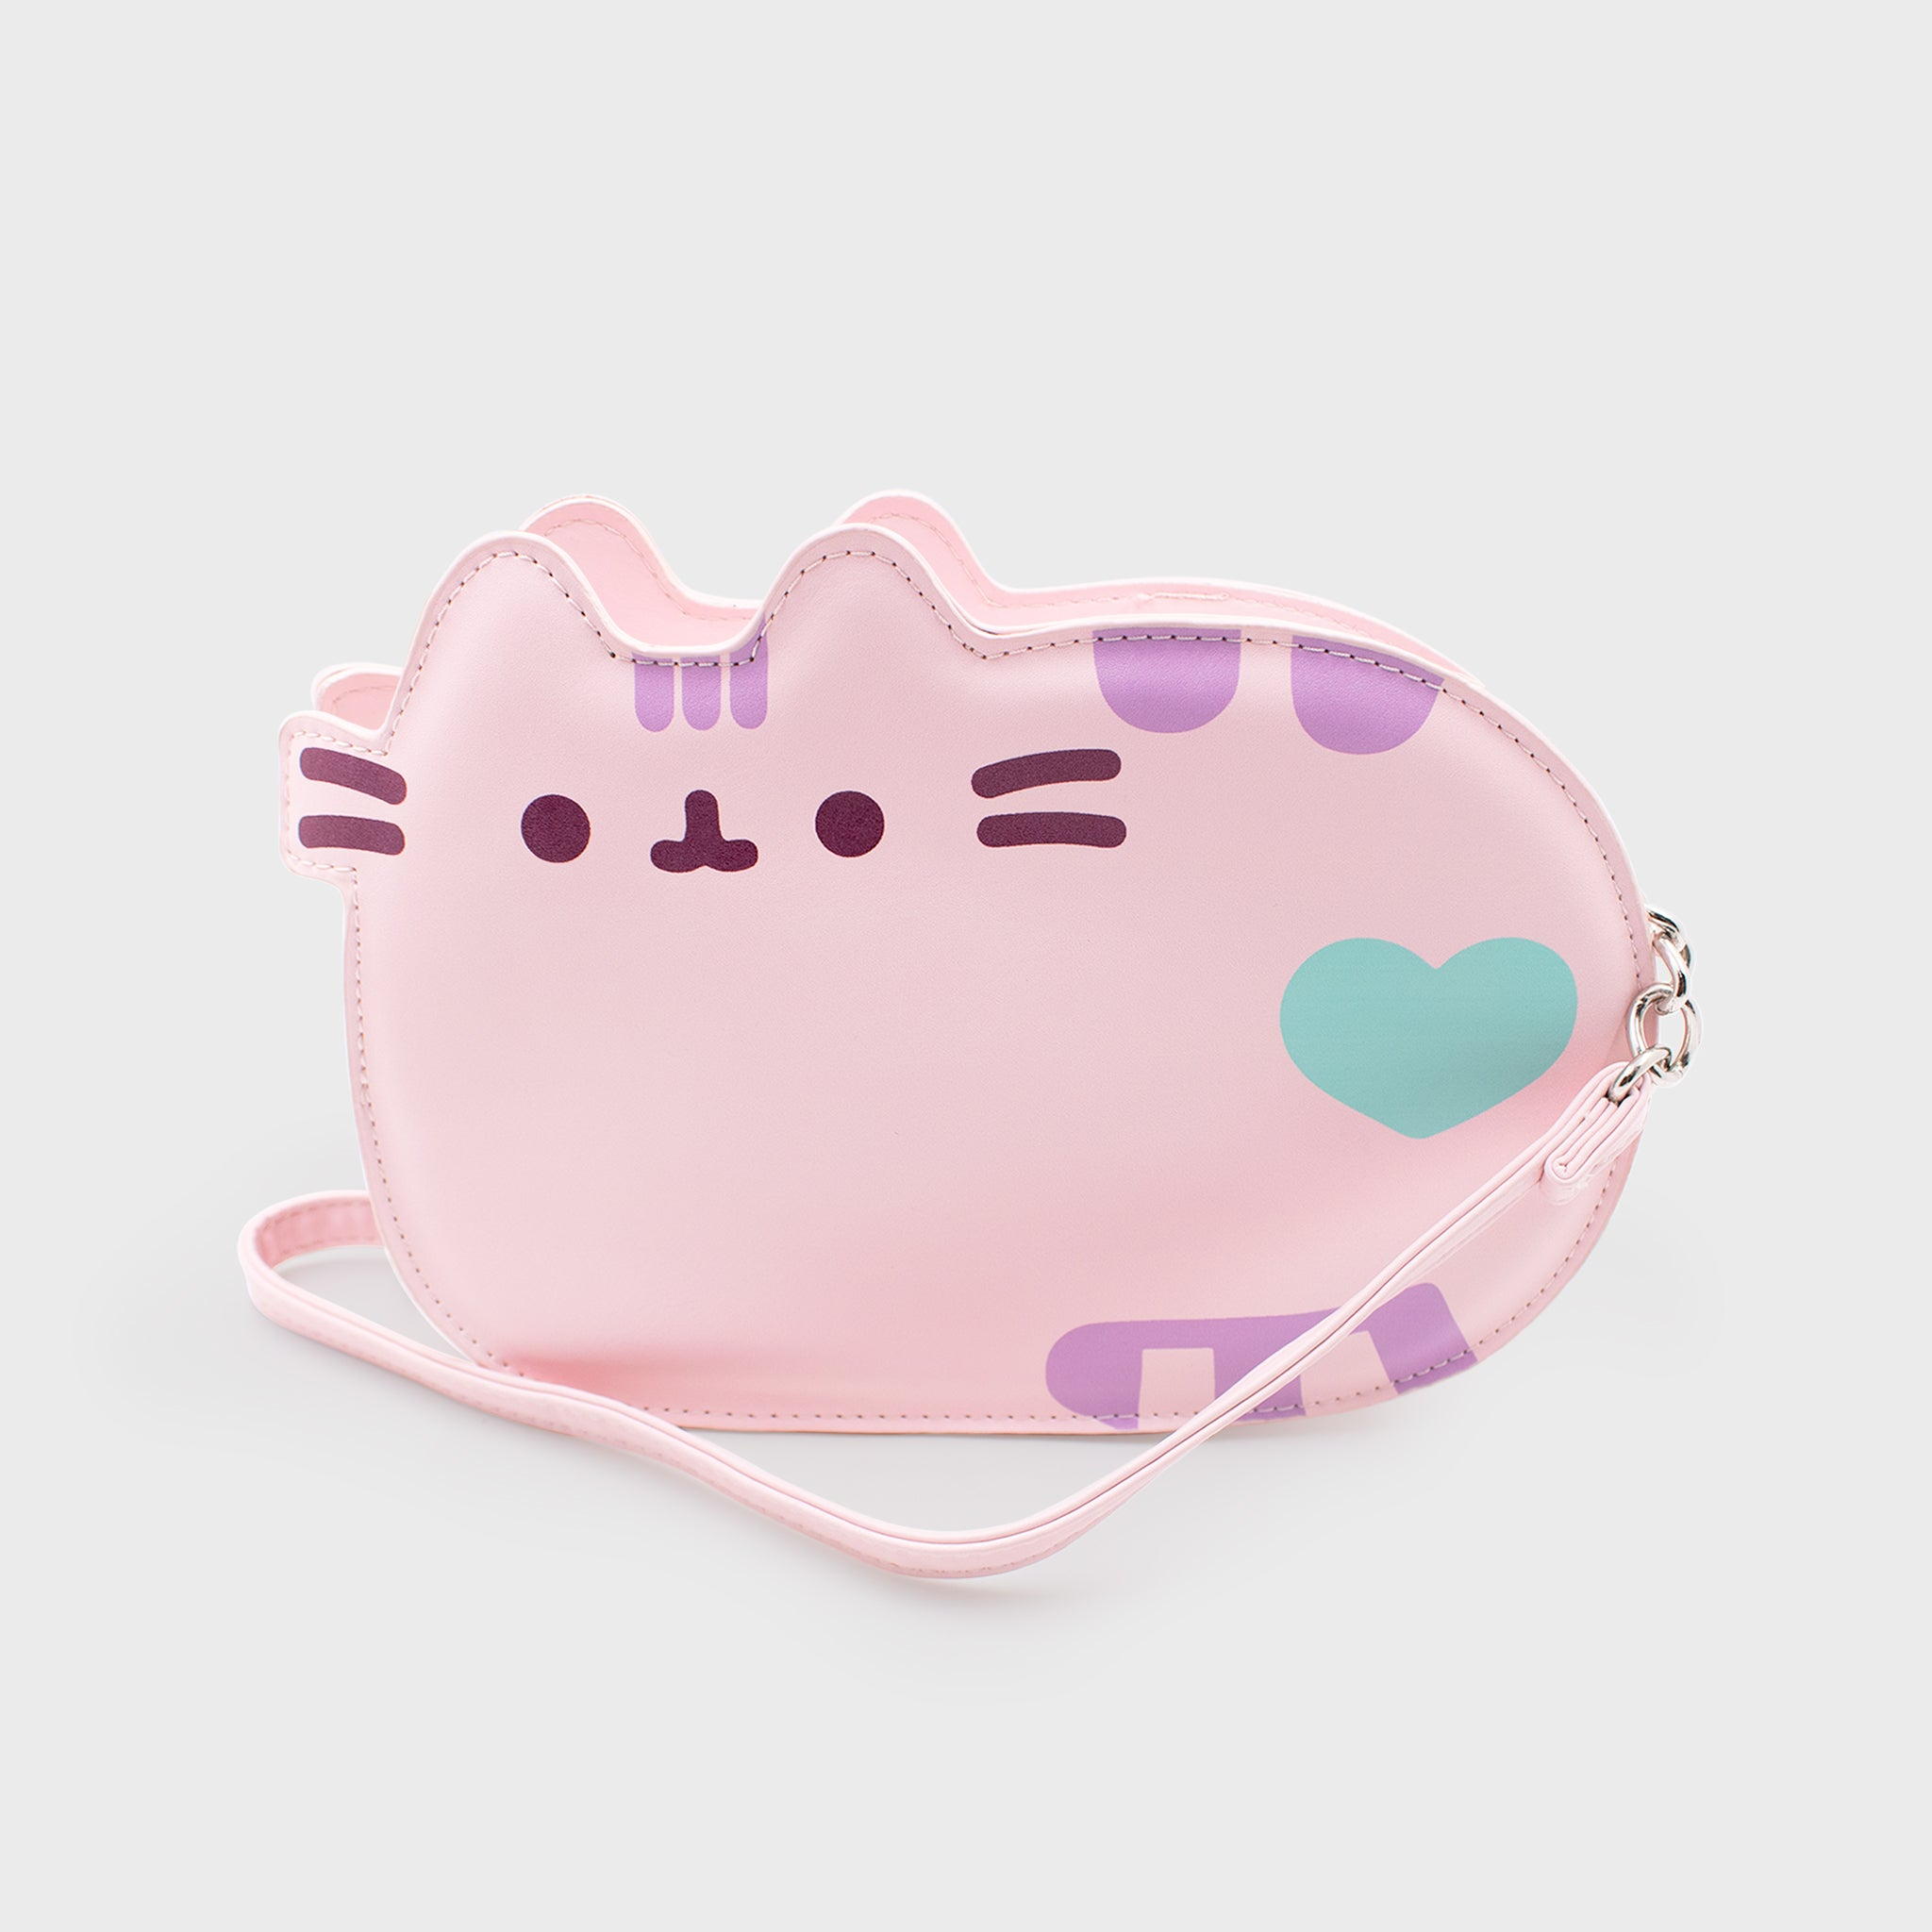 pusheen pink bag purse crossbody pocketbook cute cat culturefly